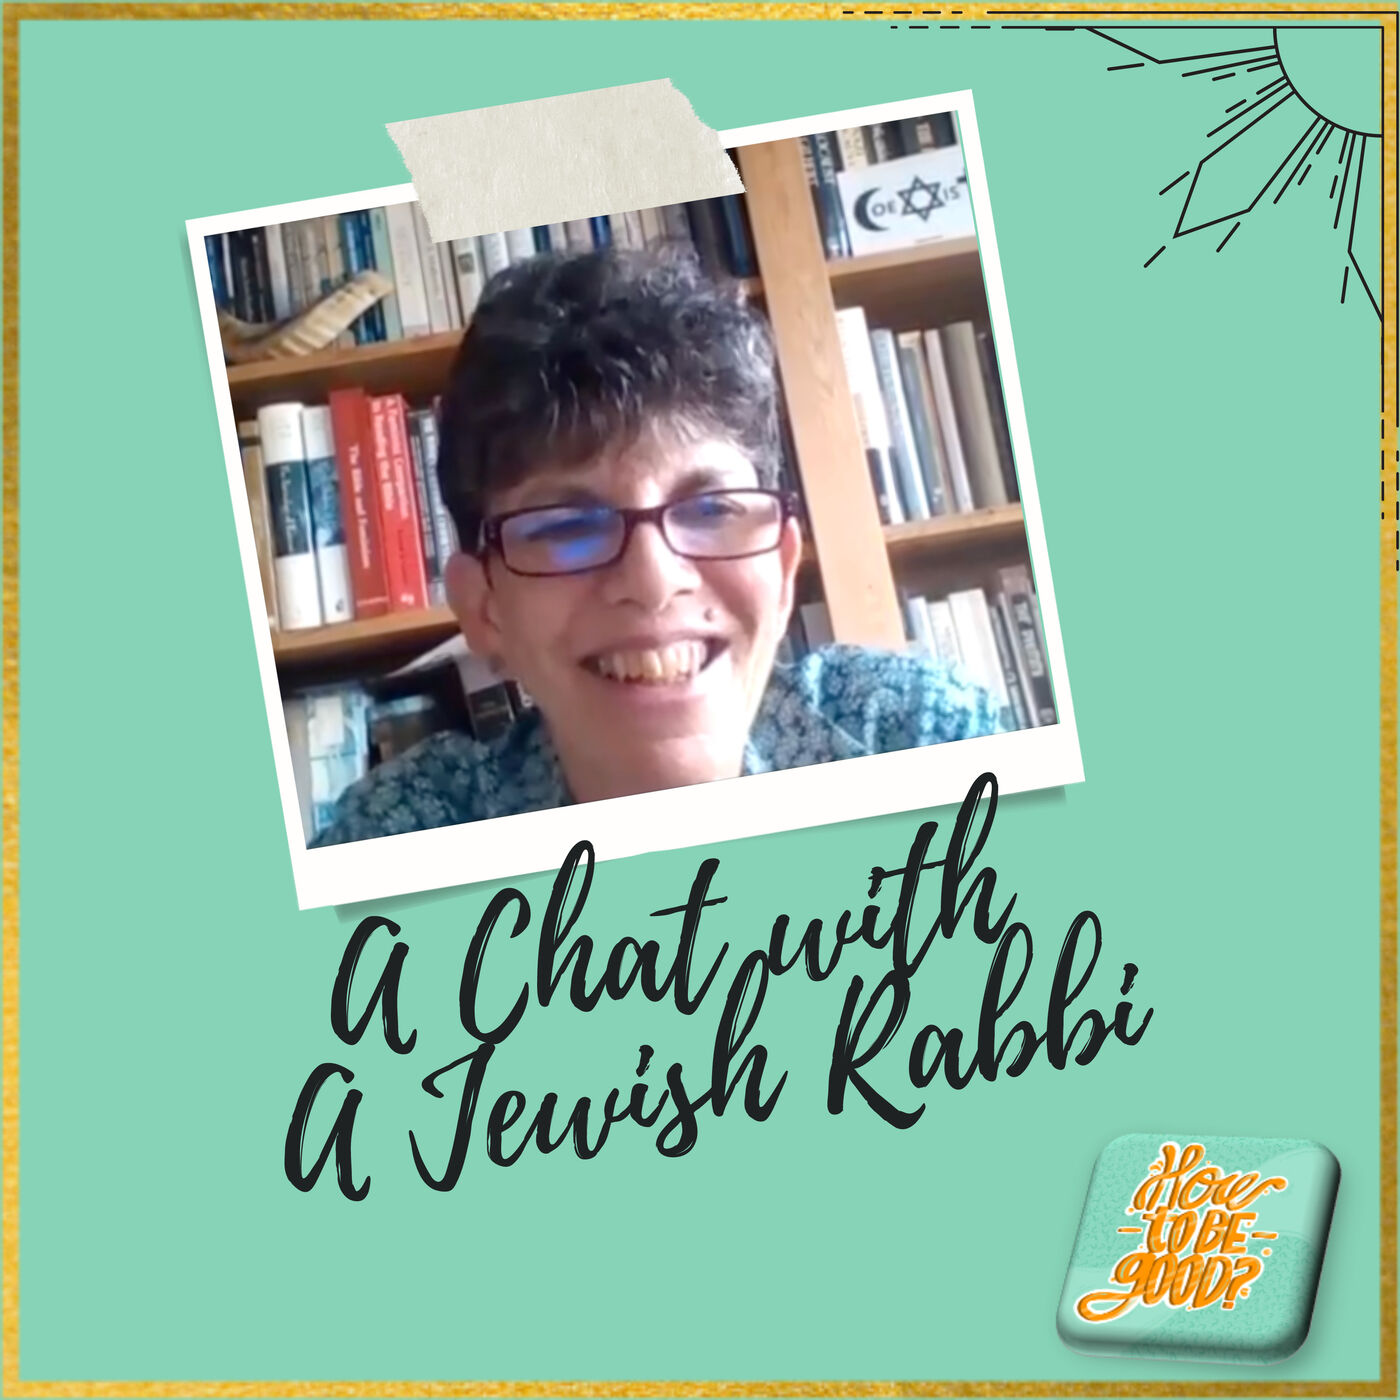 A Chat with a Jewish Rabbi